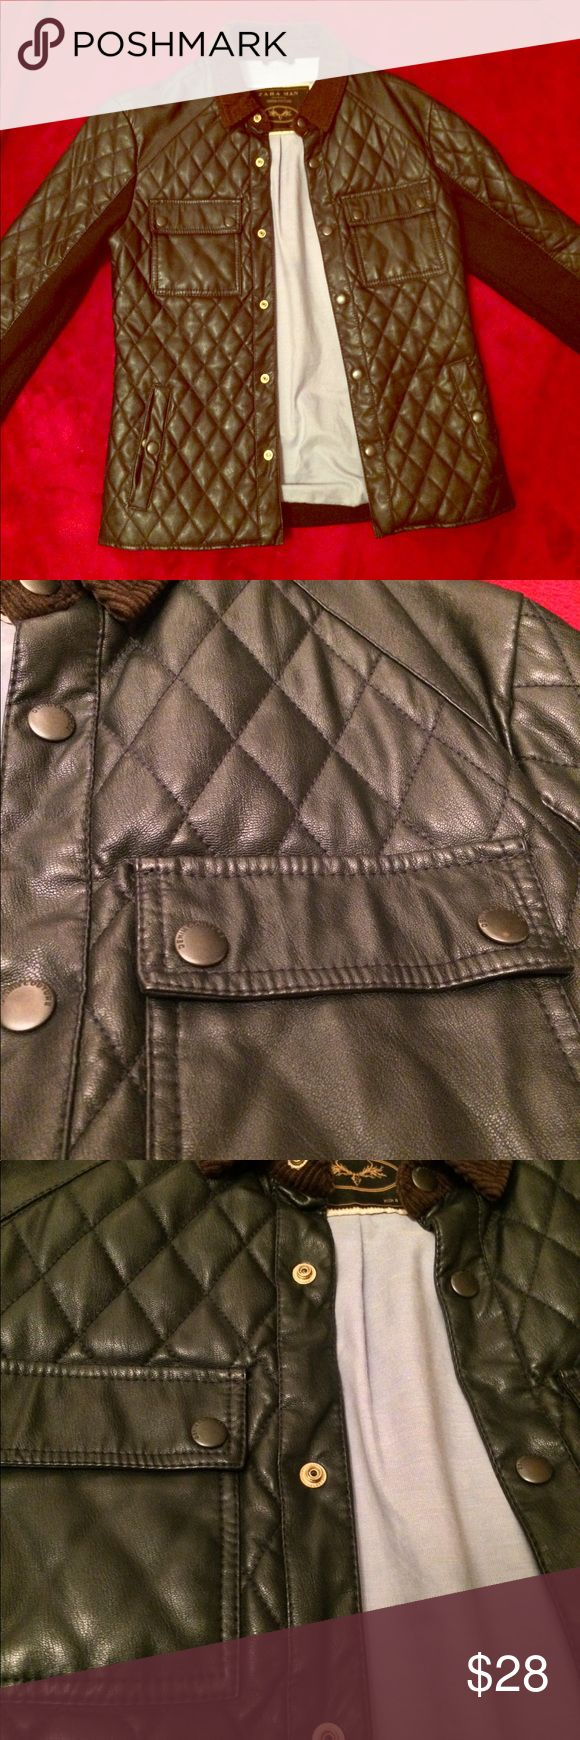 Zara Man Quilted Button Down Jacket in Navy Gold buttons illuminate off this trendy and chic Button Down Jacket from Zara. Amazing fit and great look & style. Zara Jackets & Coats Lightweight & Shirt Jackets